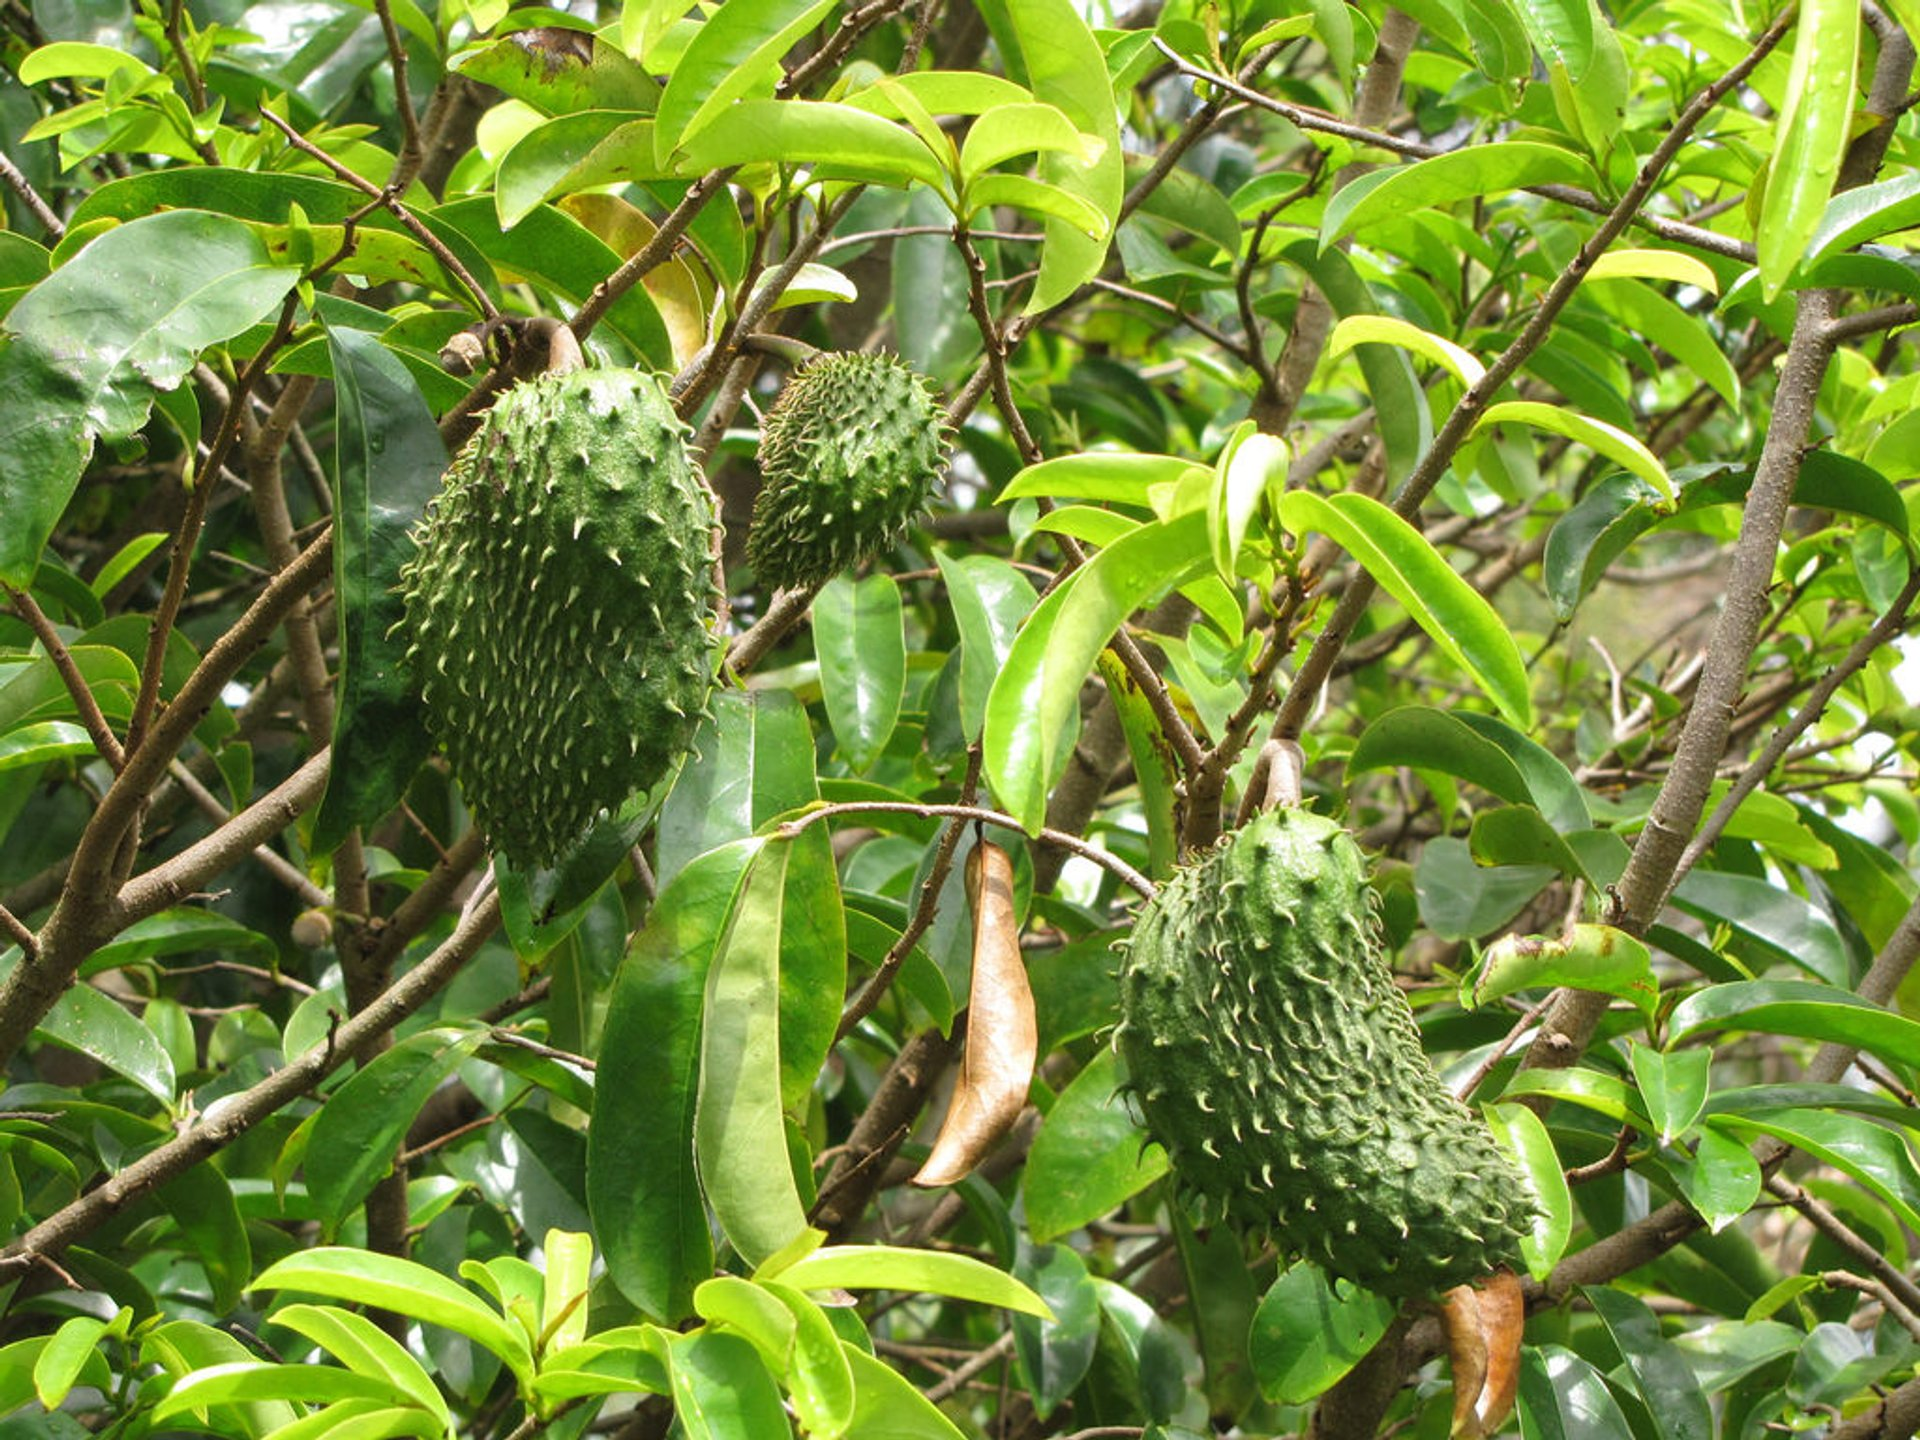 Soursop in Hawaii 2020 - Best Time